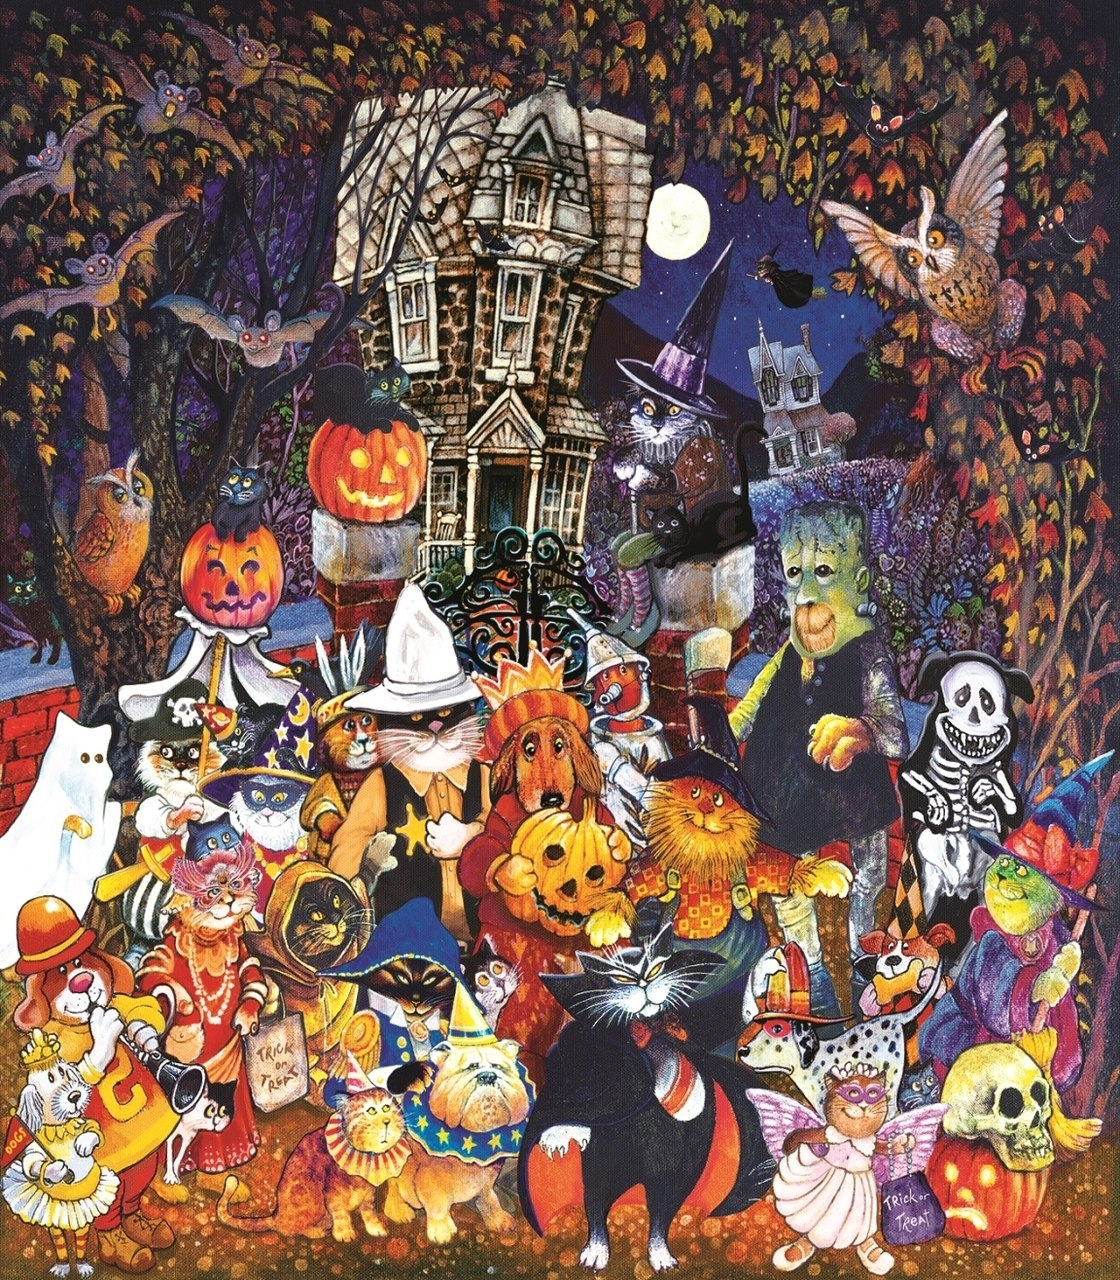 Cats and Dogs on Halloween - 300pc Jigsaw Puzzle By Sunsout  			  					NEW